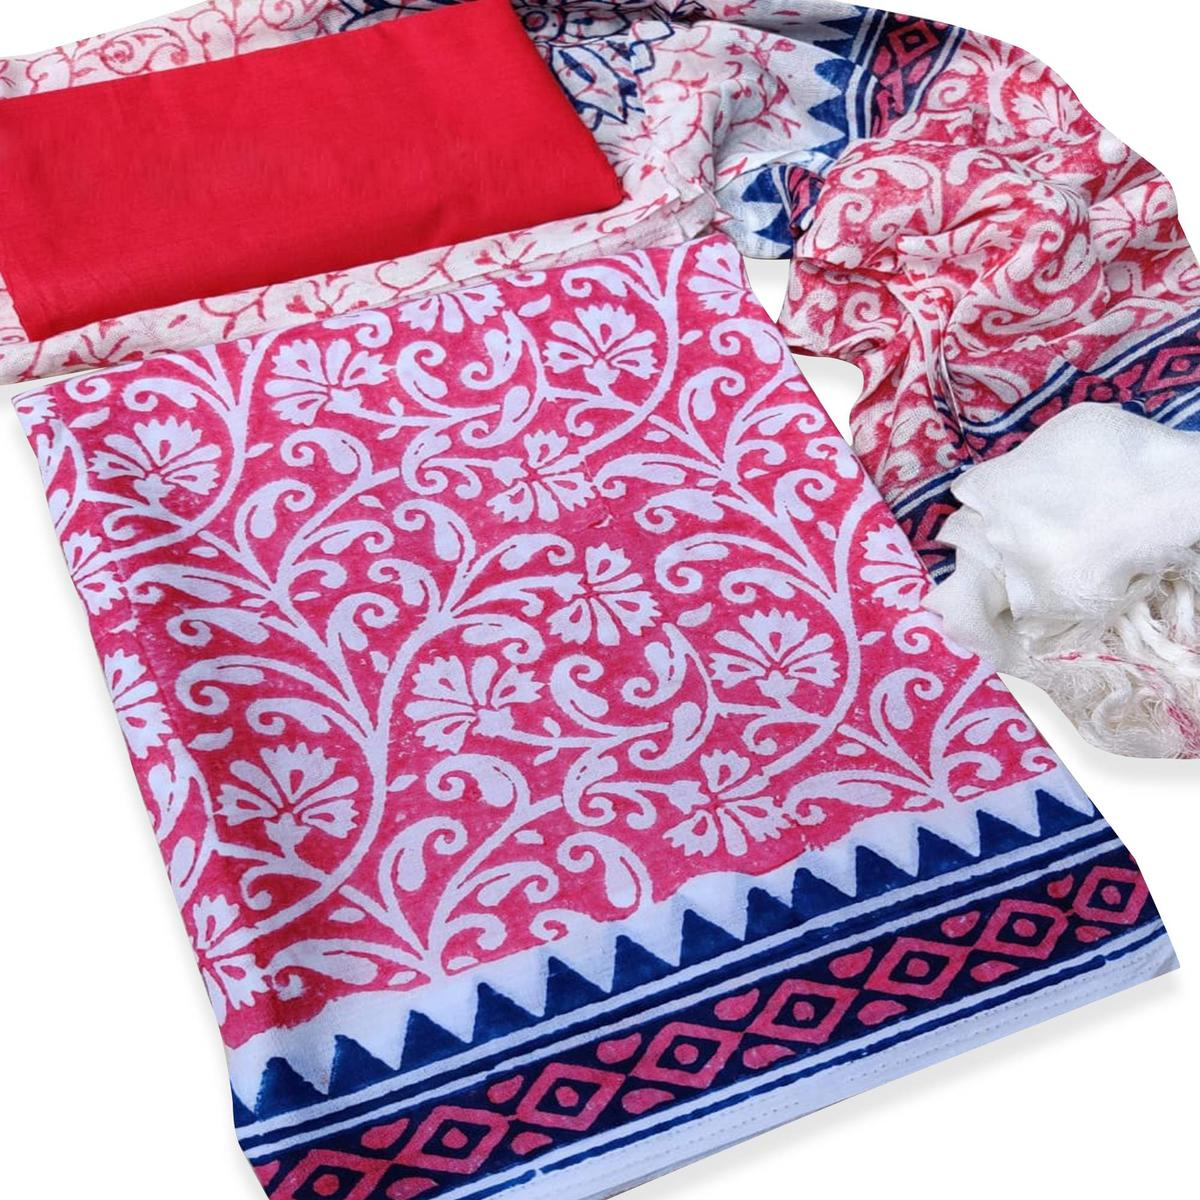 IRIS - Pink Colored Casual Wear Pure Hand Block Printed Cotton Dress Material